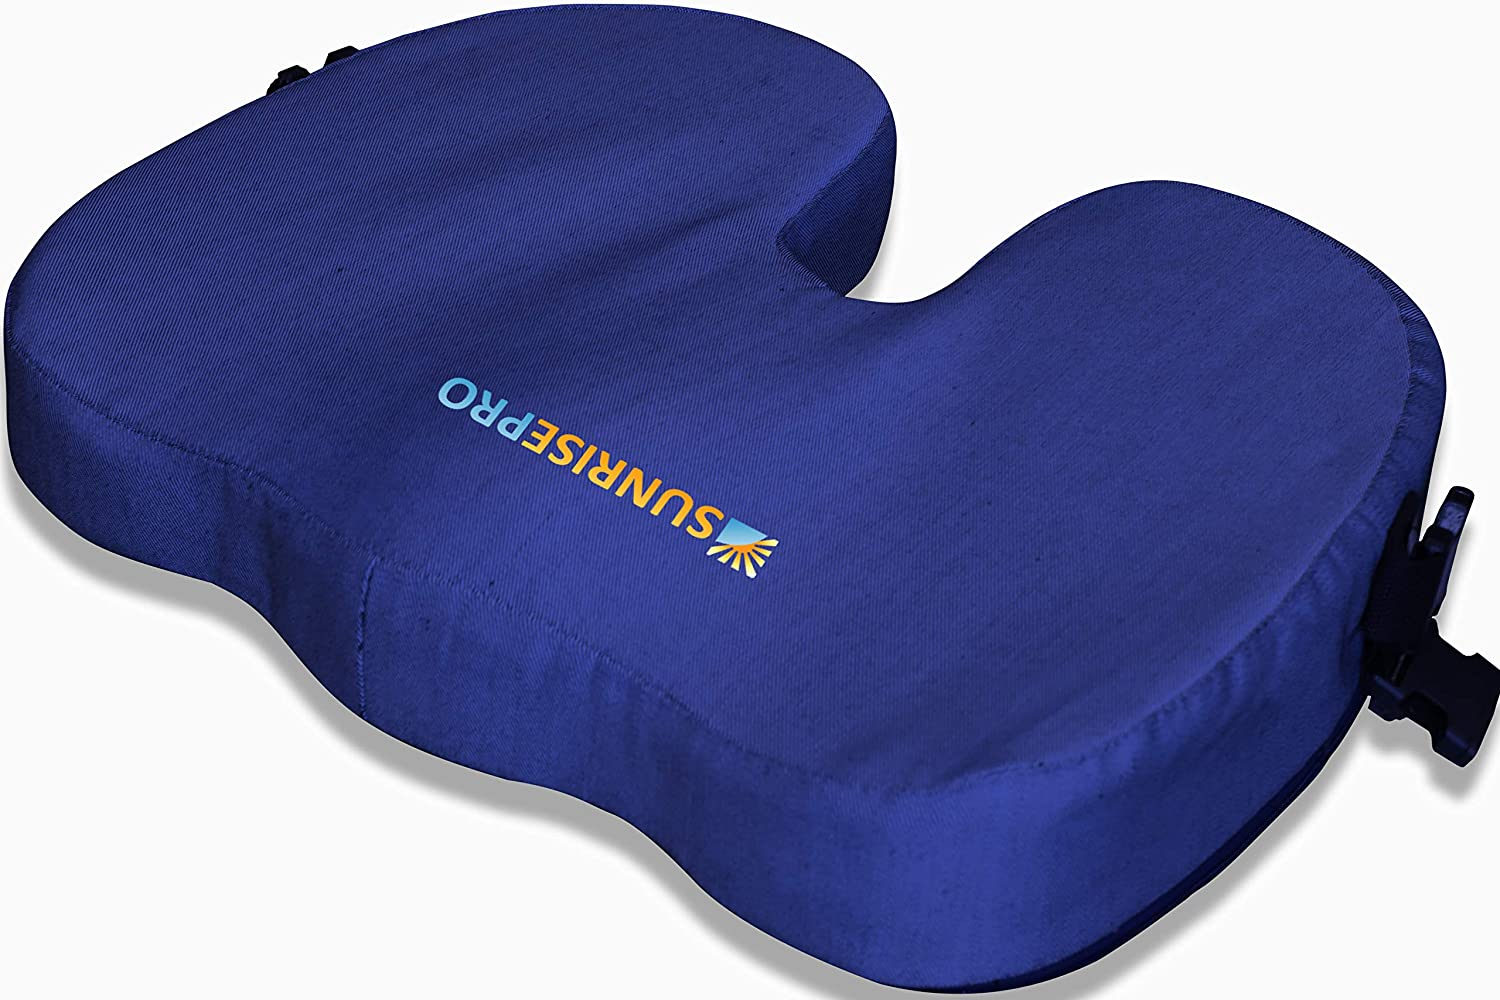 SunrisePro Premium Memory Foam Posture Orthopedic Seat Cushions, for Back Pain, Coccyx Tailbone, Sciatica, Free Carry Bag & Free Seat Cushion Cover 100% Unconditional Guarantee